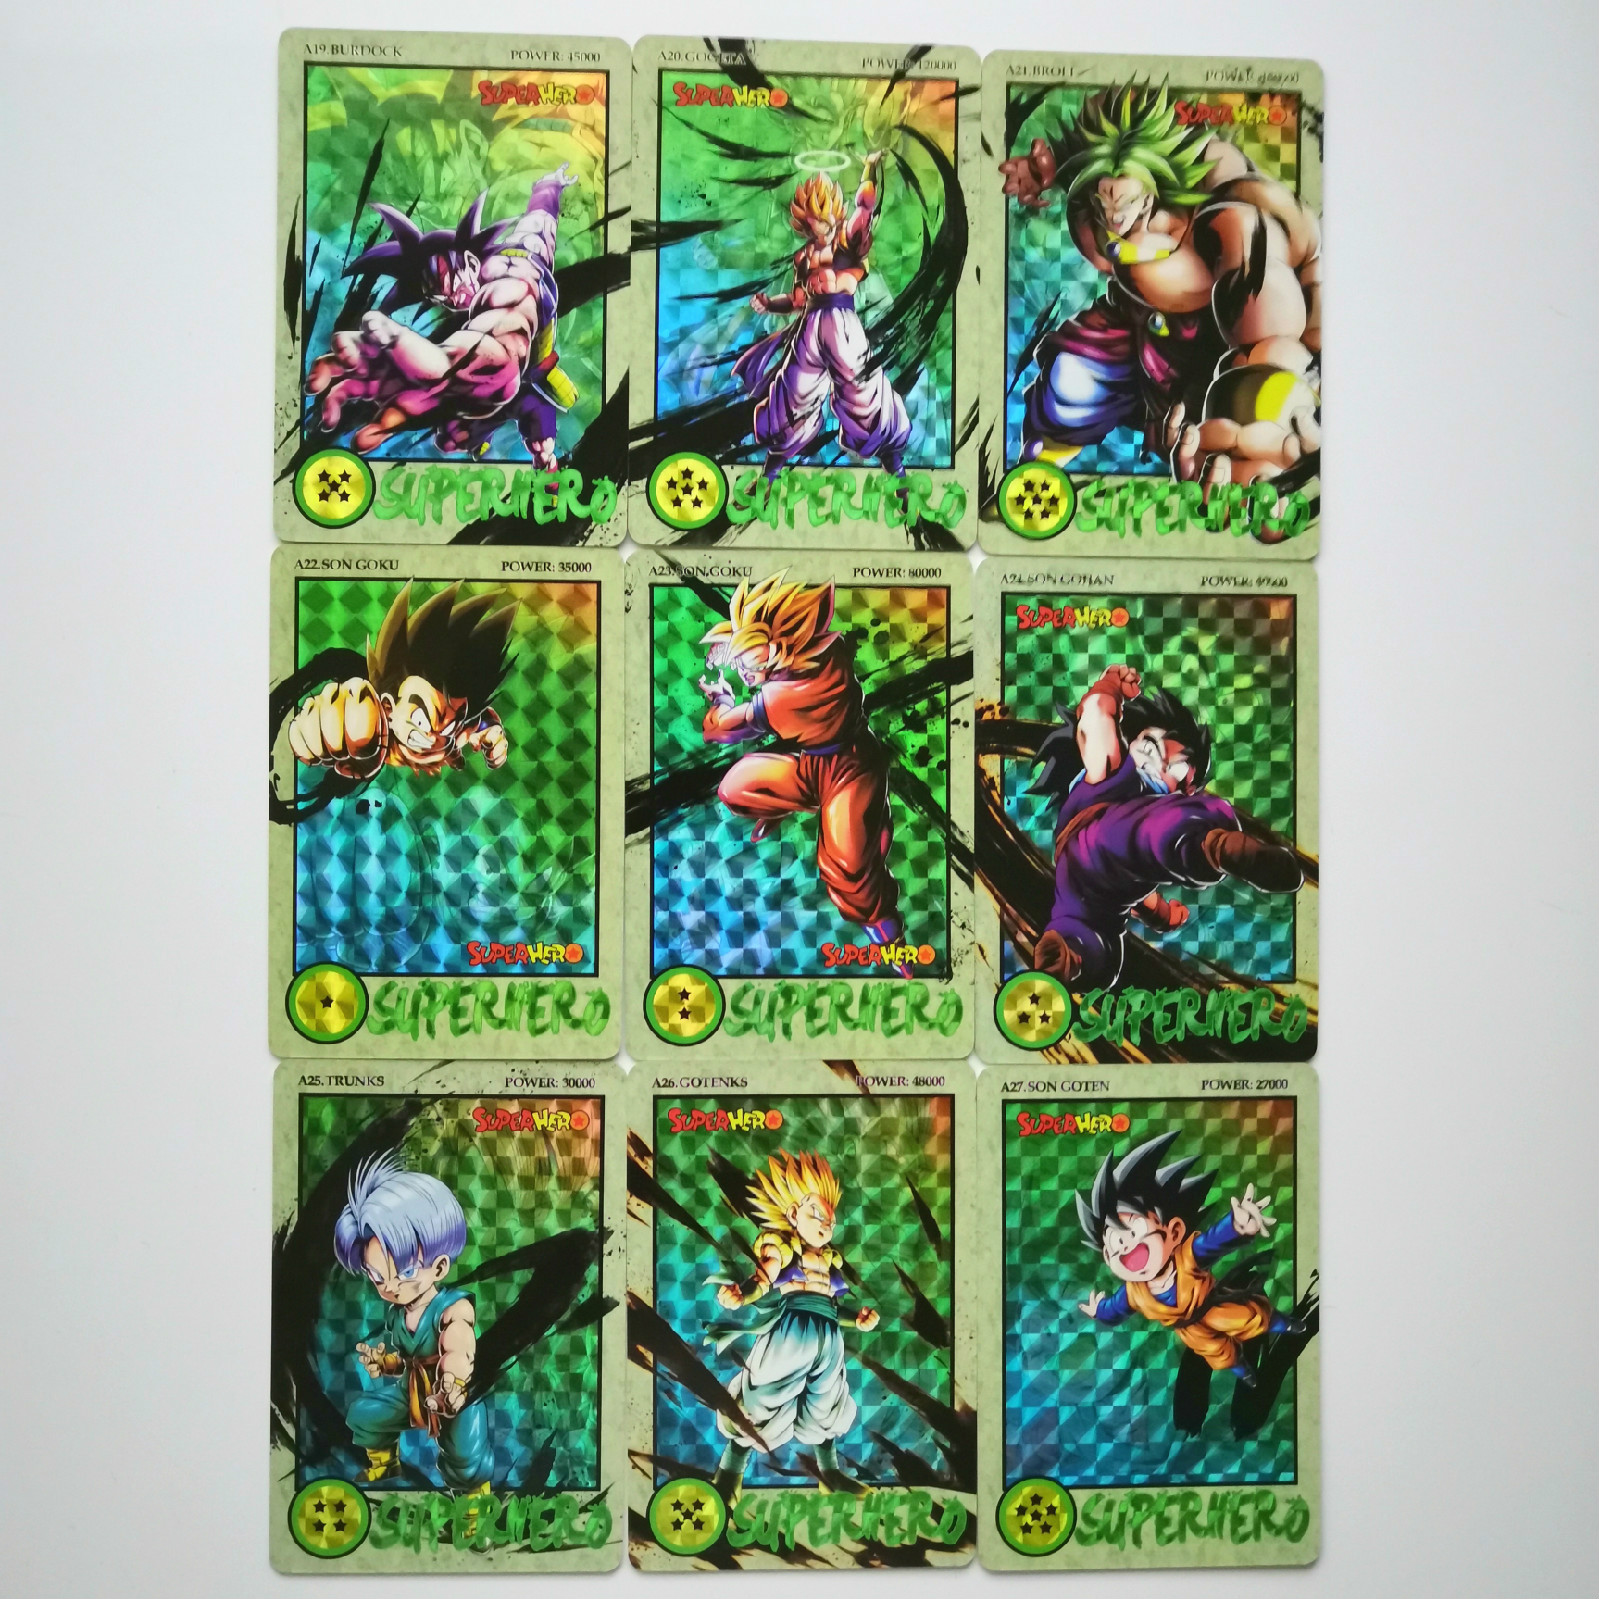 36pcs/set Super Dragon Ball Z Ink Relief Heroes Battle Card Ultra Instinct Goku Vegeta Super Game Collection Cards